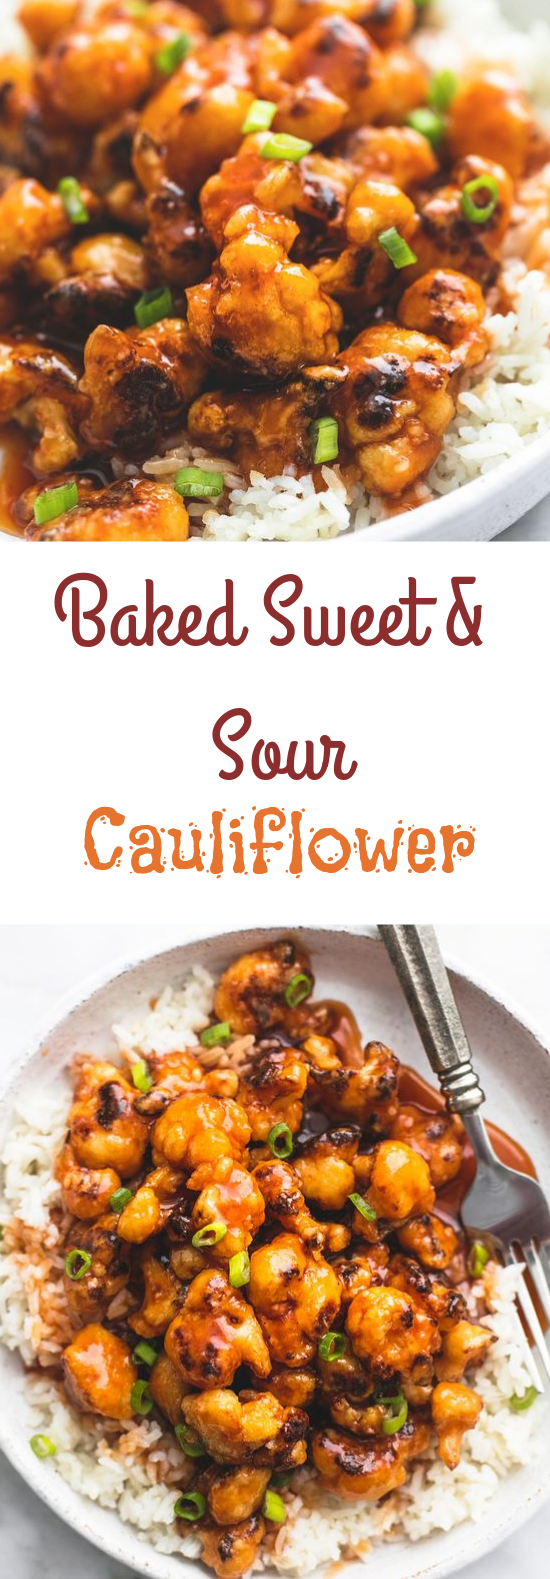 BAKED SWEET & SOUR CAULIFLOWER #deliciousrecipe #veganmeal